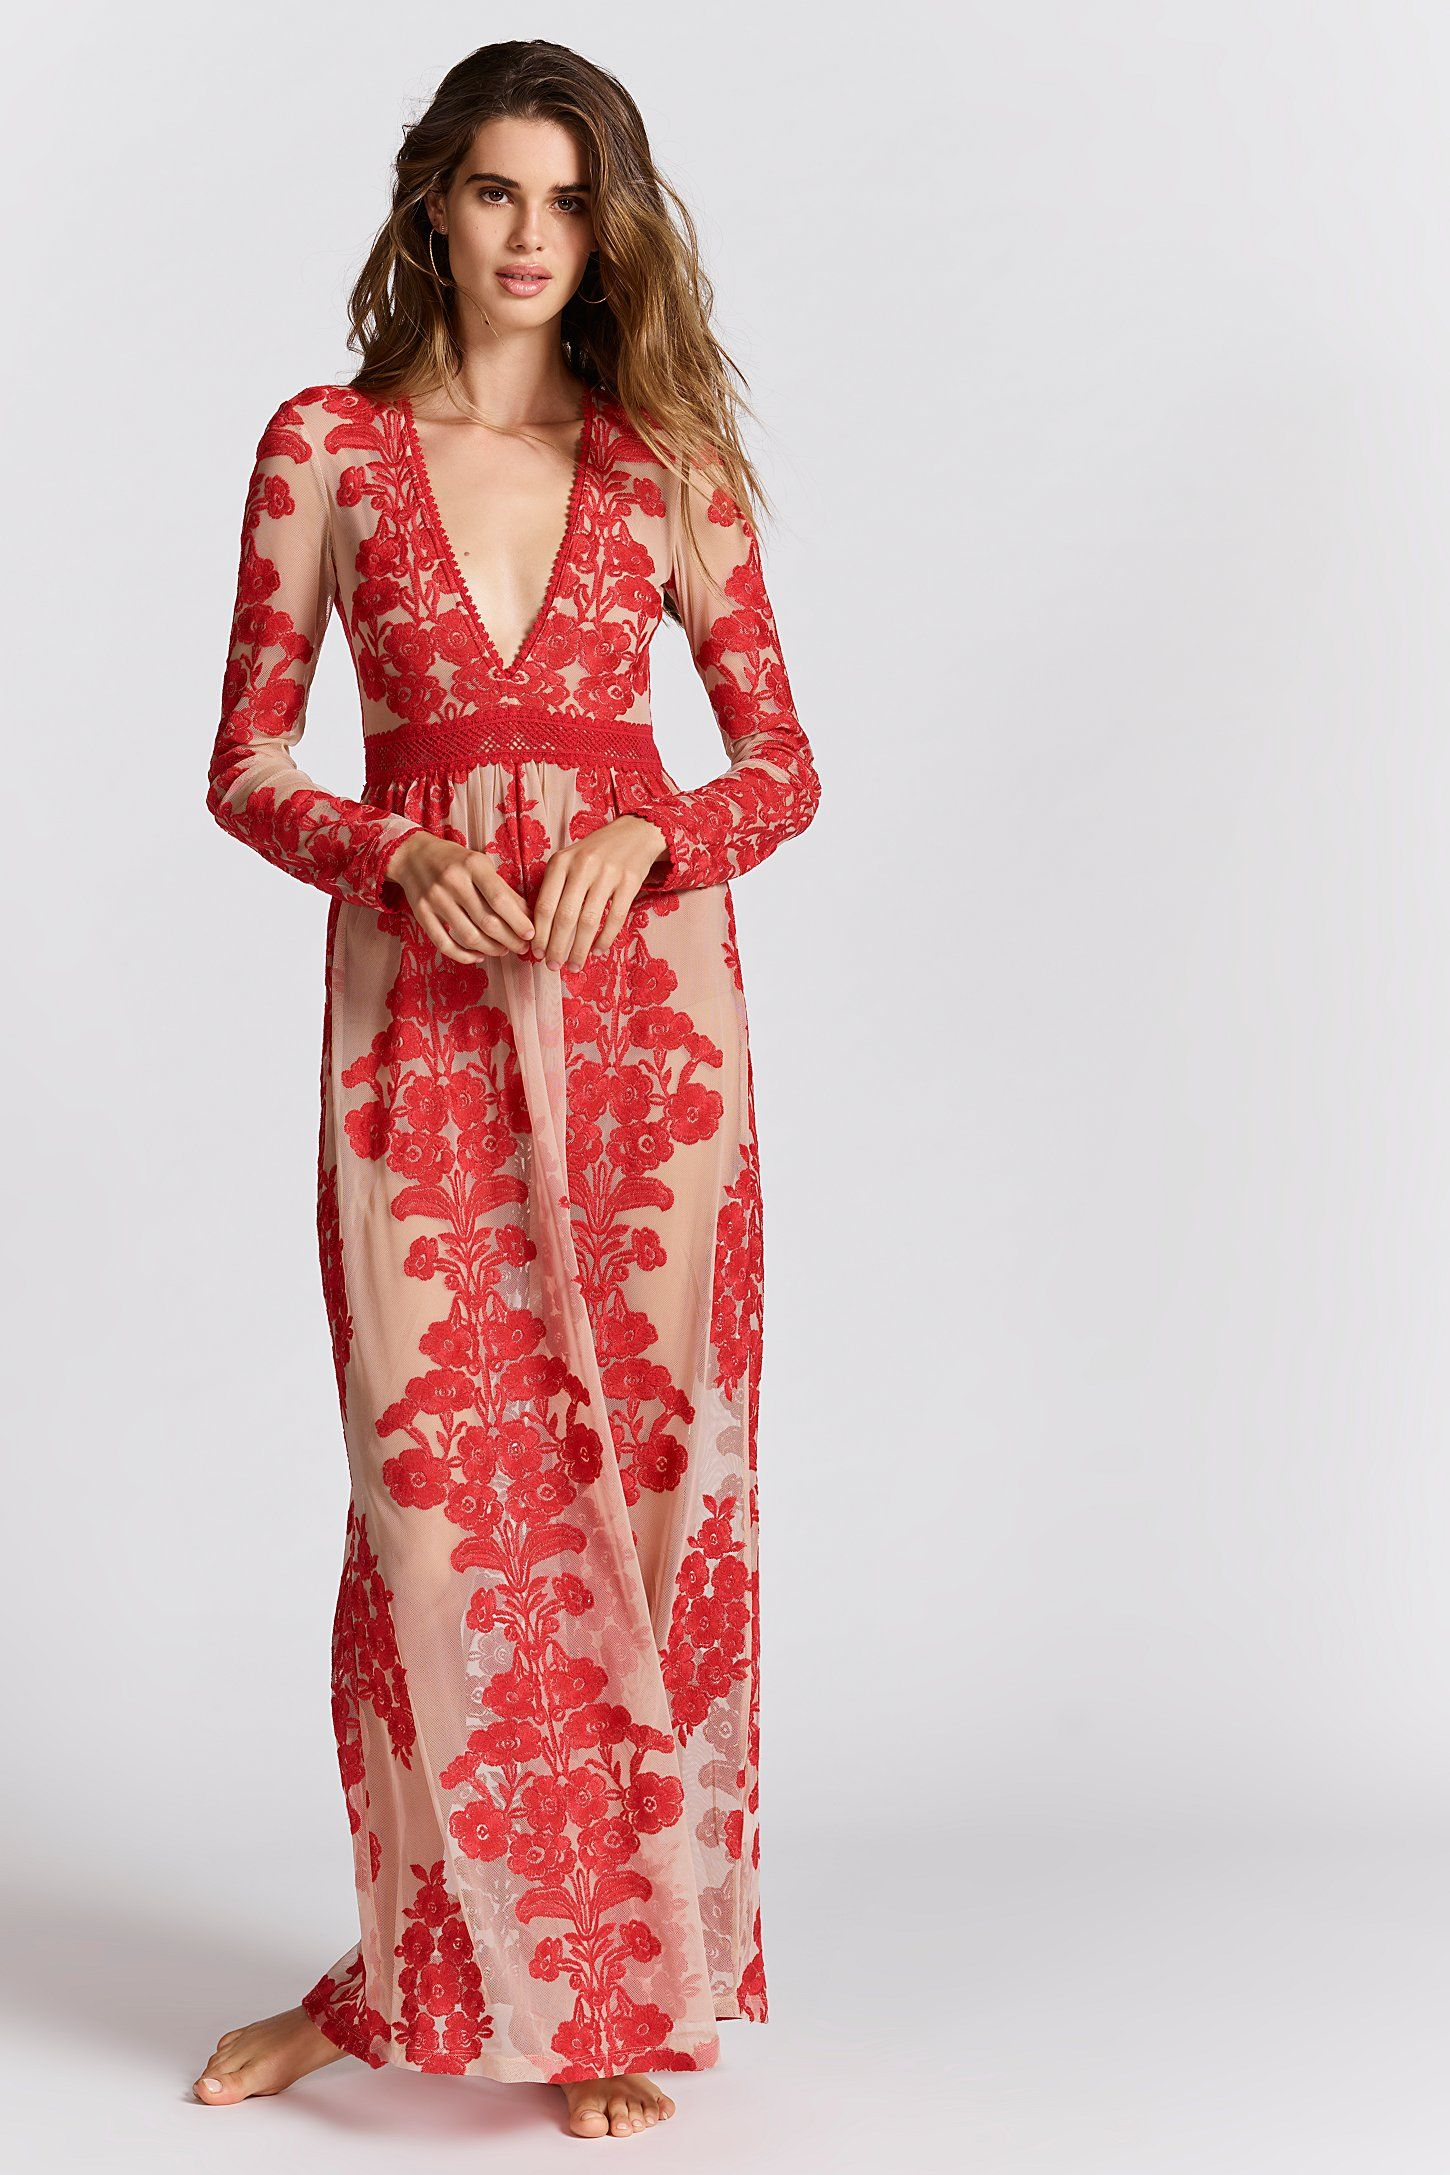 aa747d6e4d Shop our Temecula Maxi Dress at Free People.com. Share style pics with FP  Me